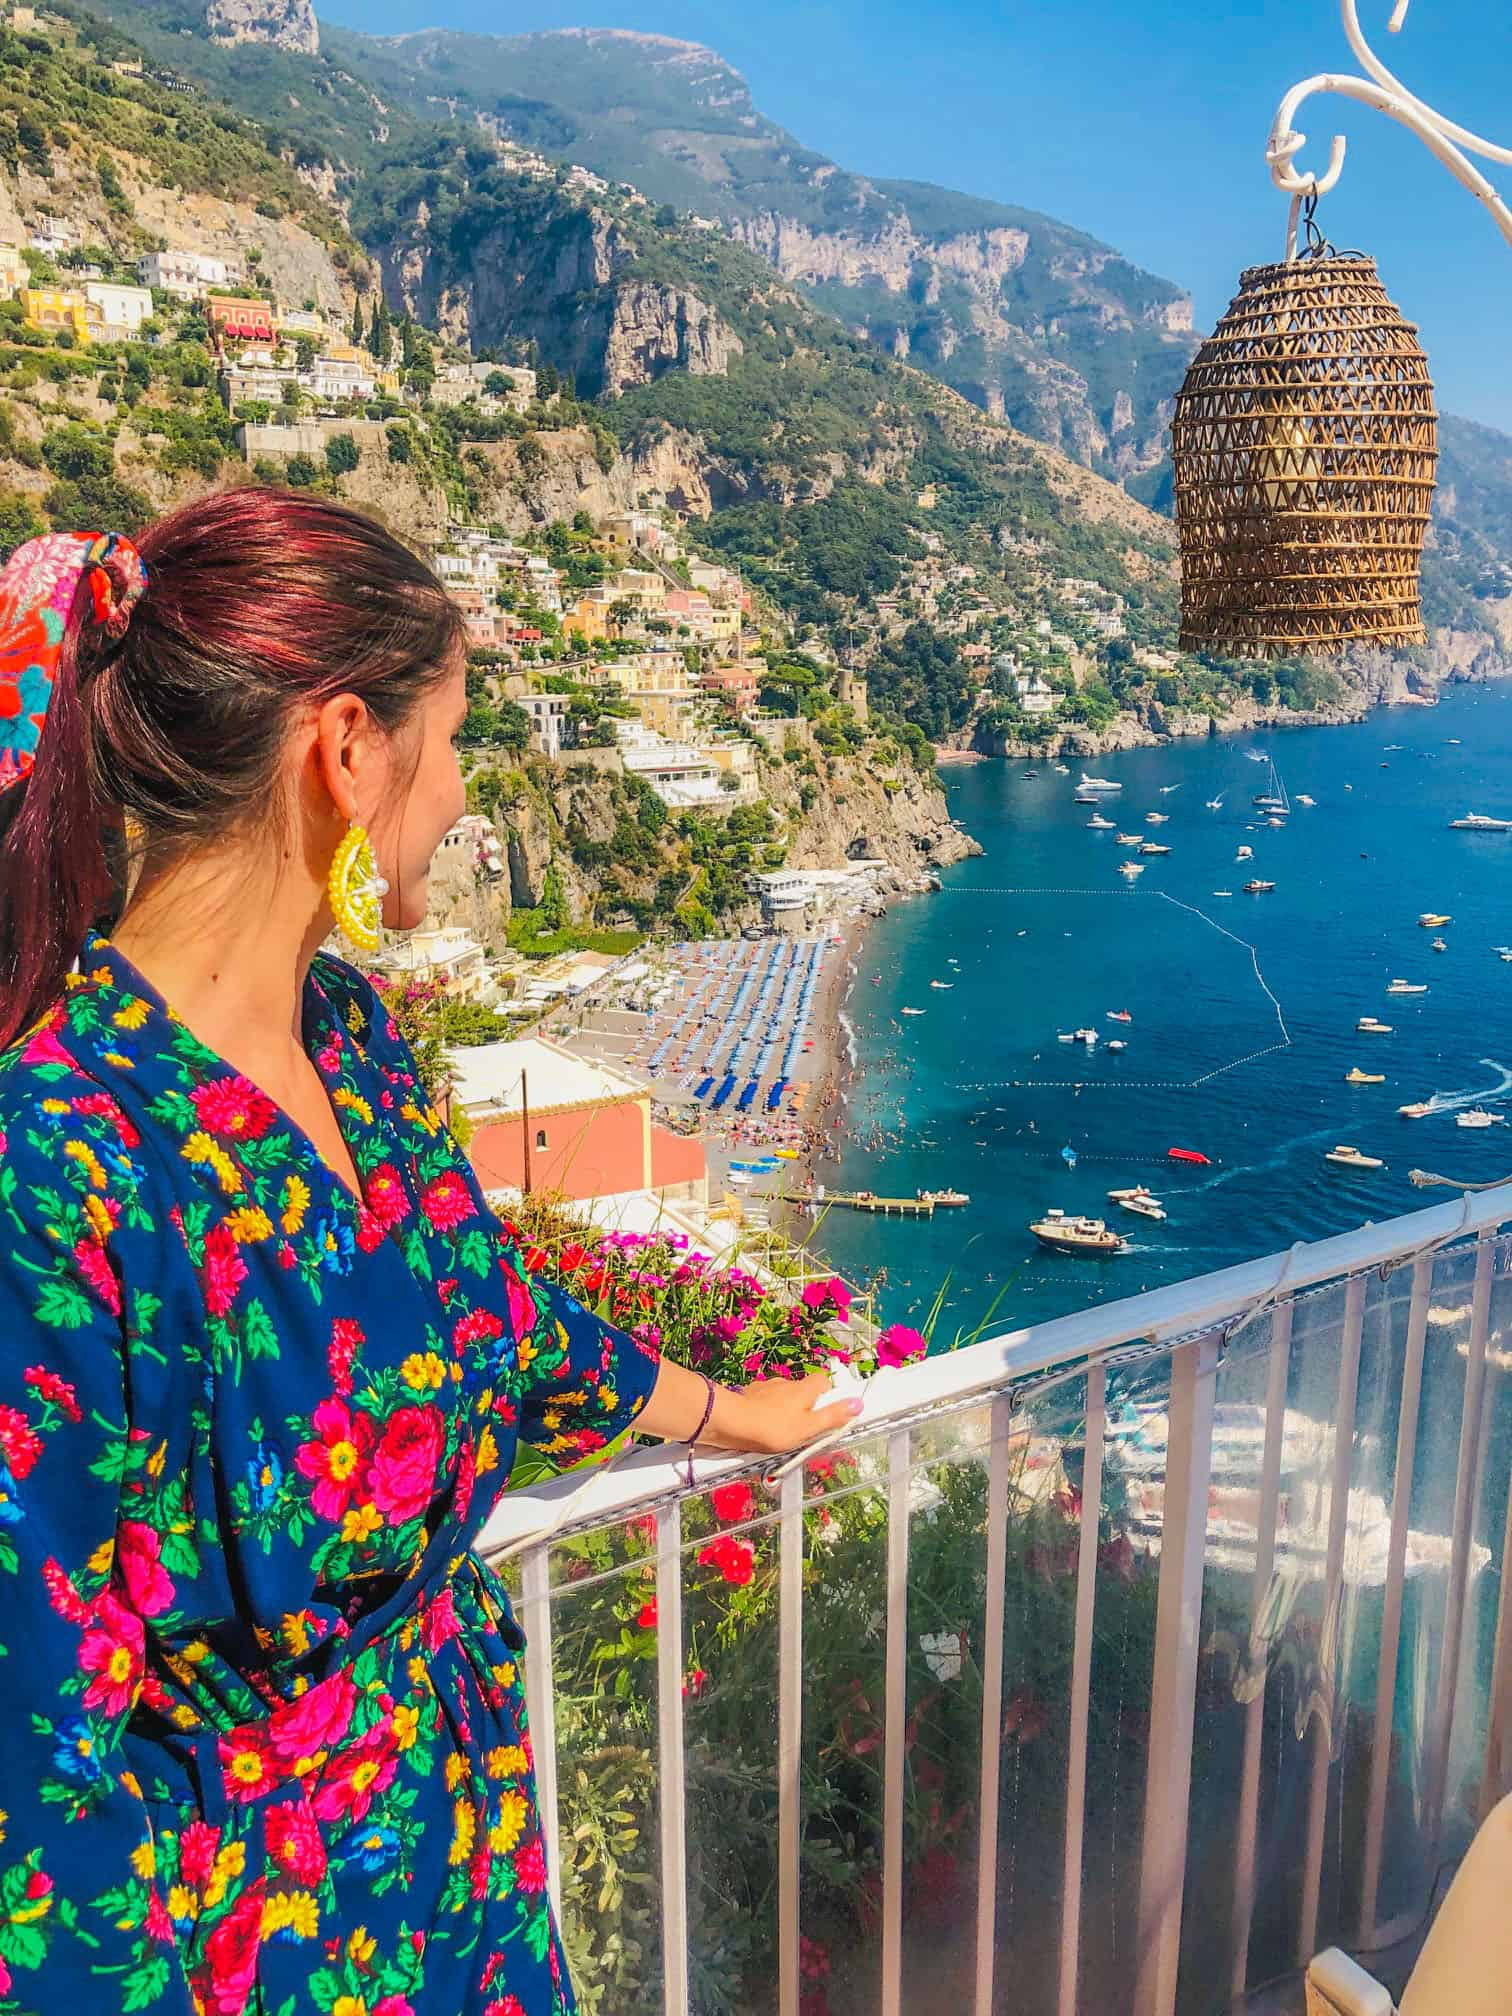 Most stunning views in Positano